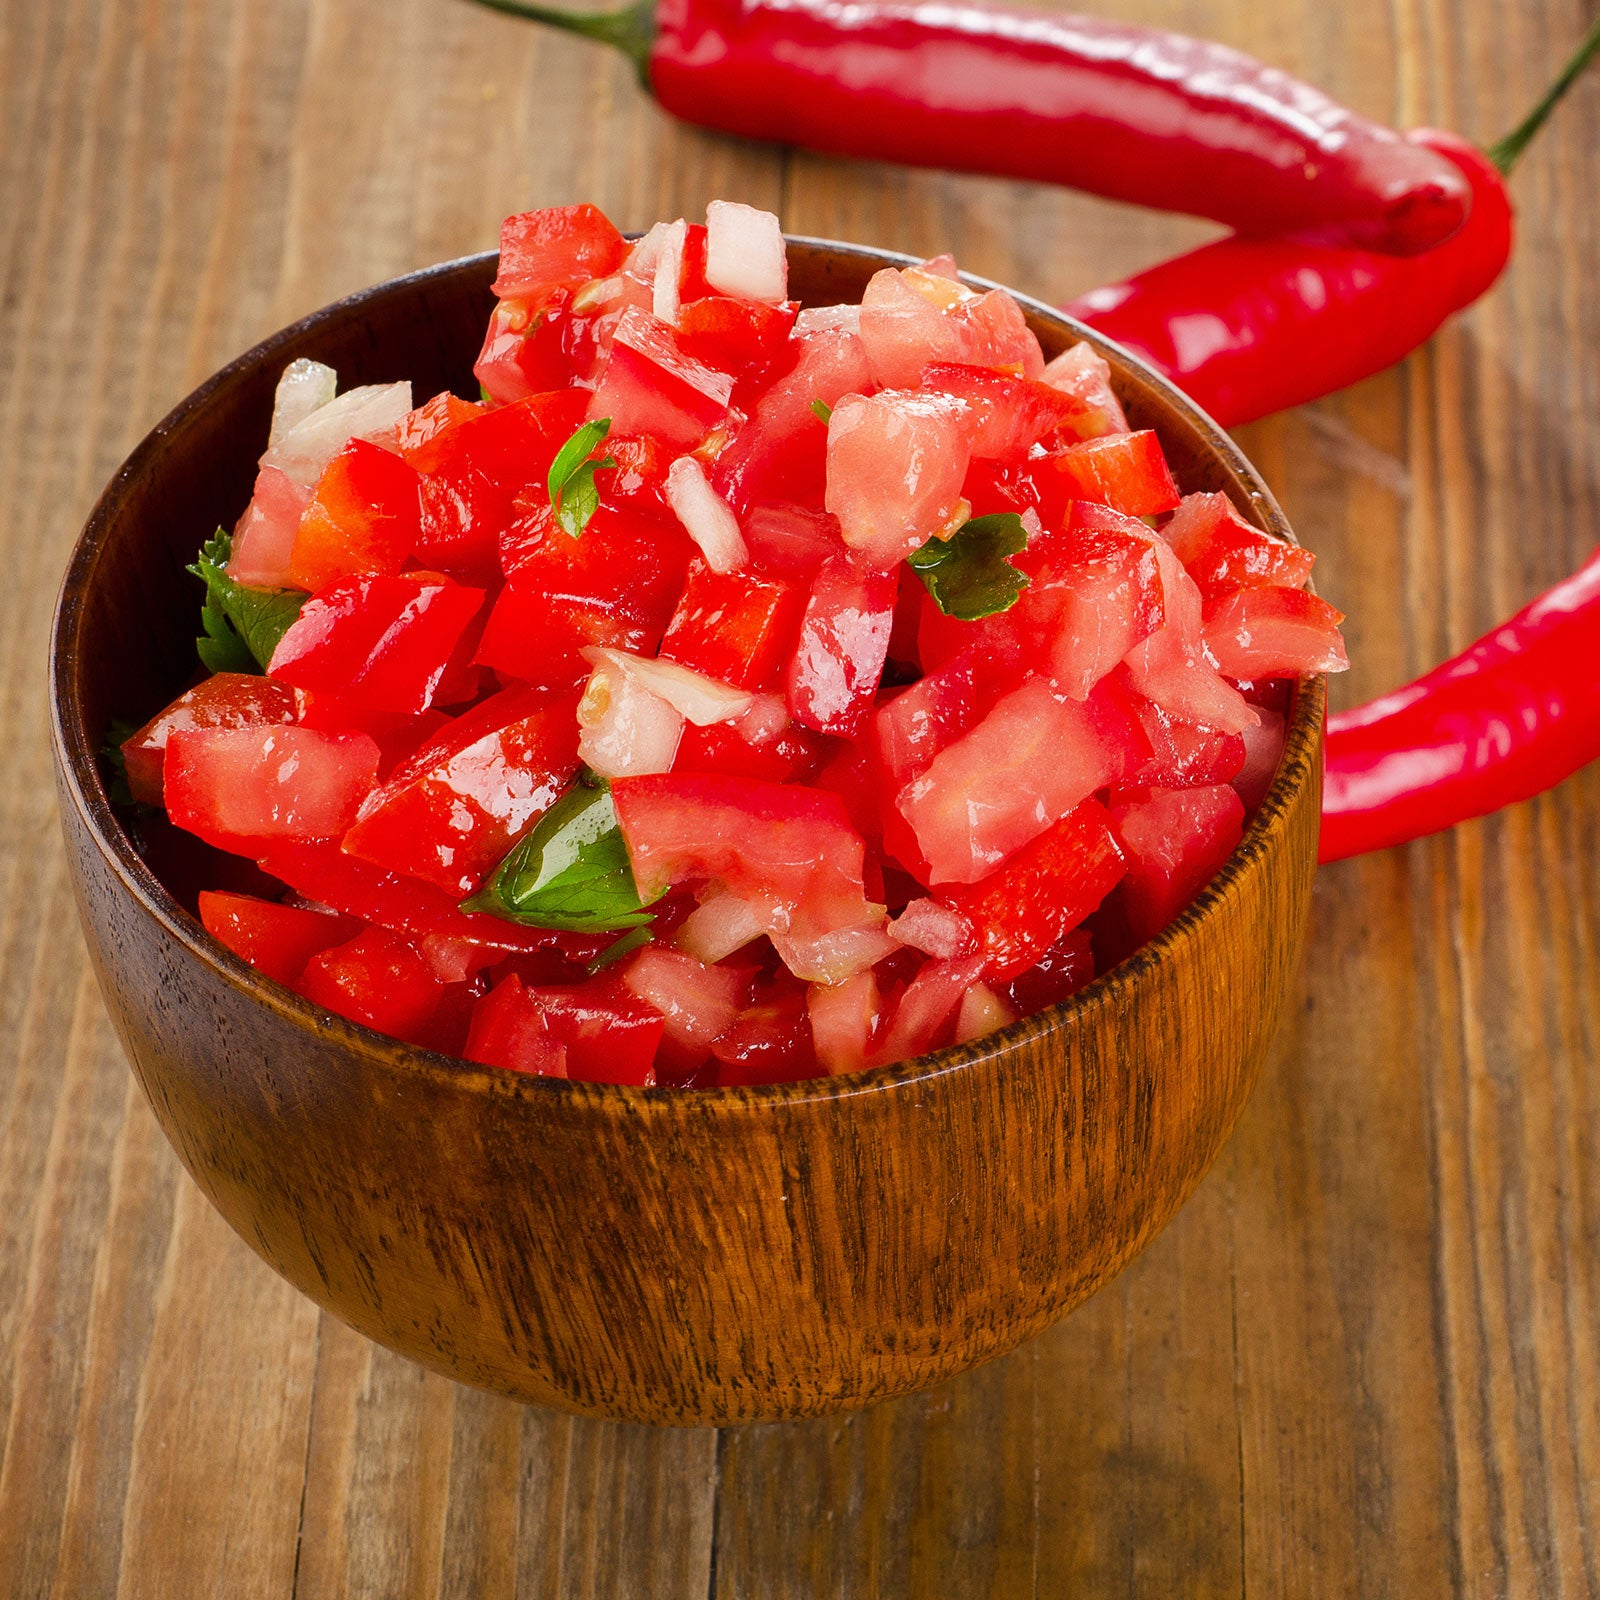 fresh pico de gallo in a wooden bowl